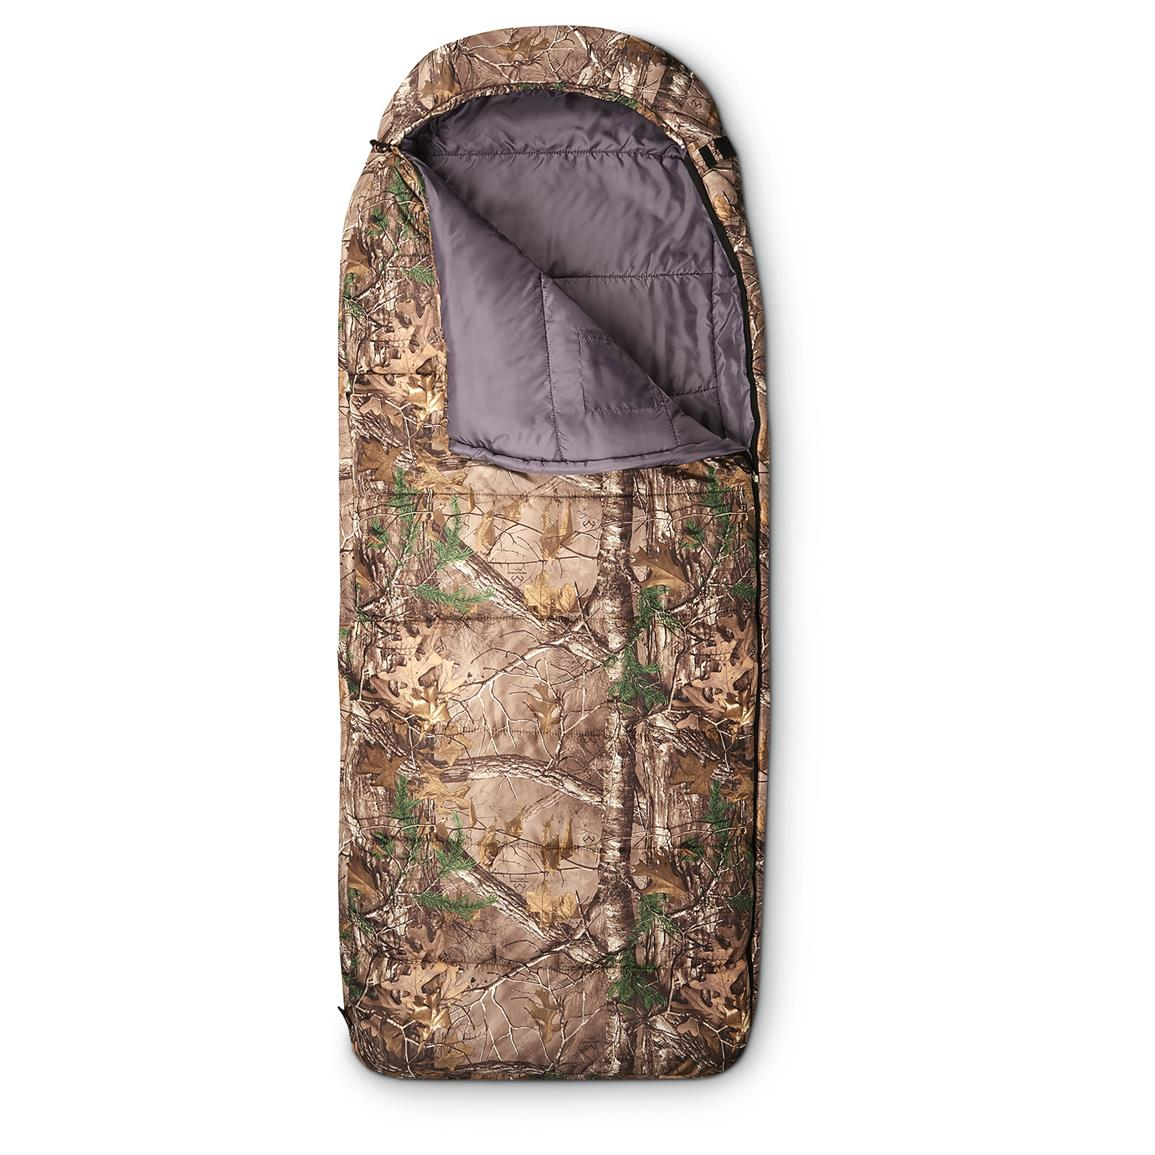 Guide Gear Hooded Realtree Camo Sleeping Bag, 0 Degree